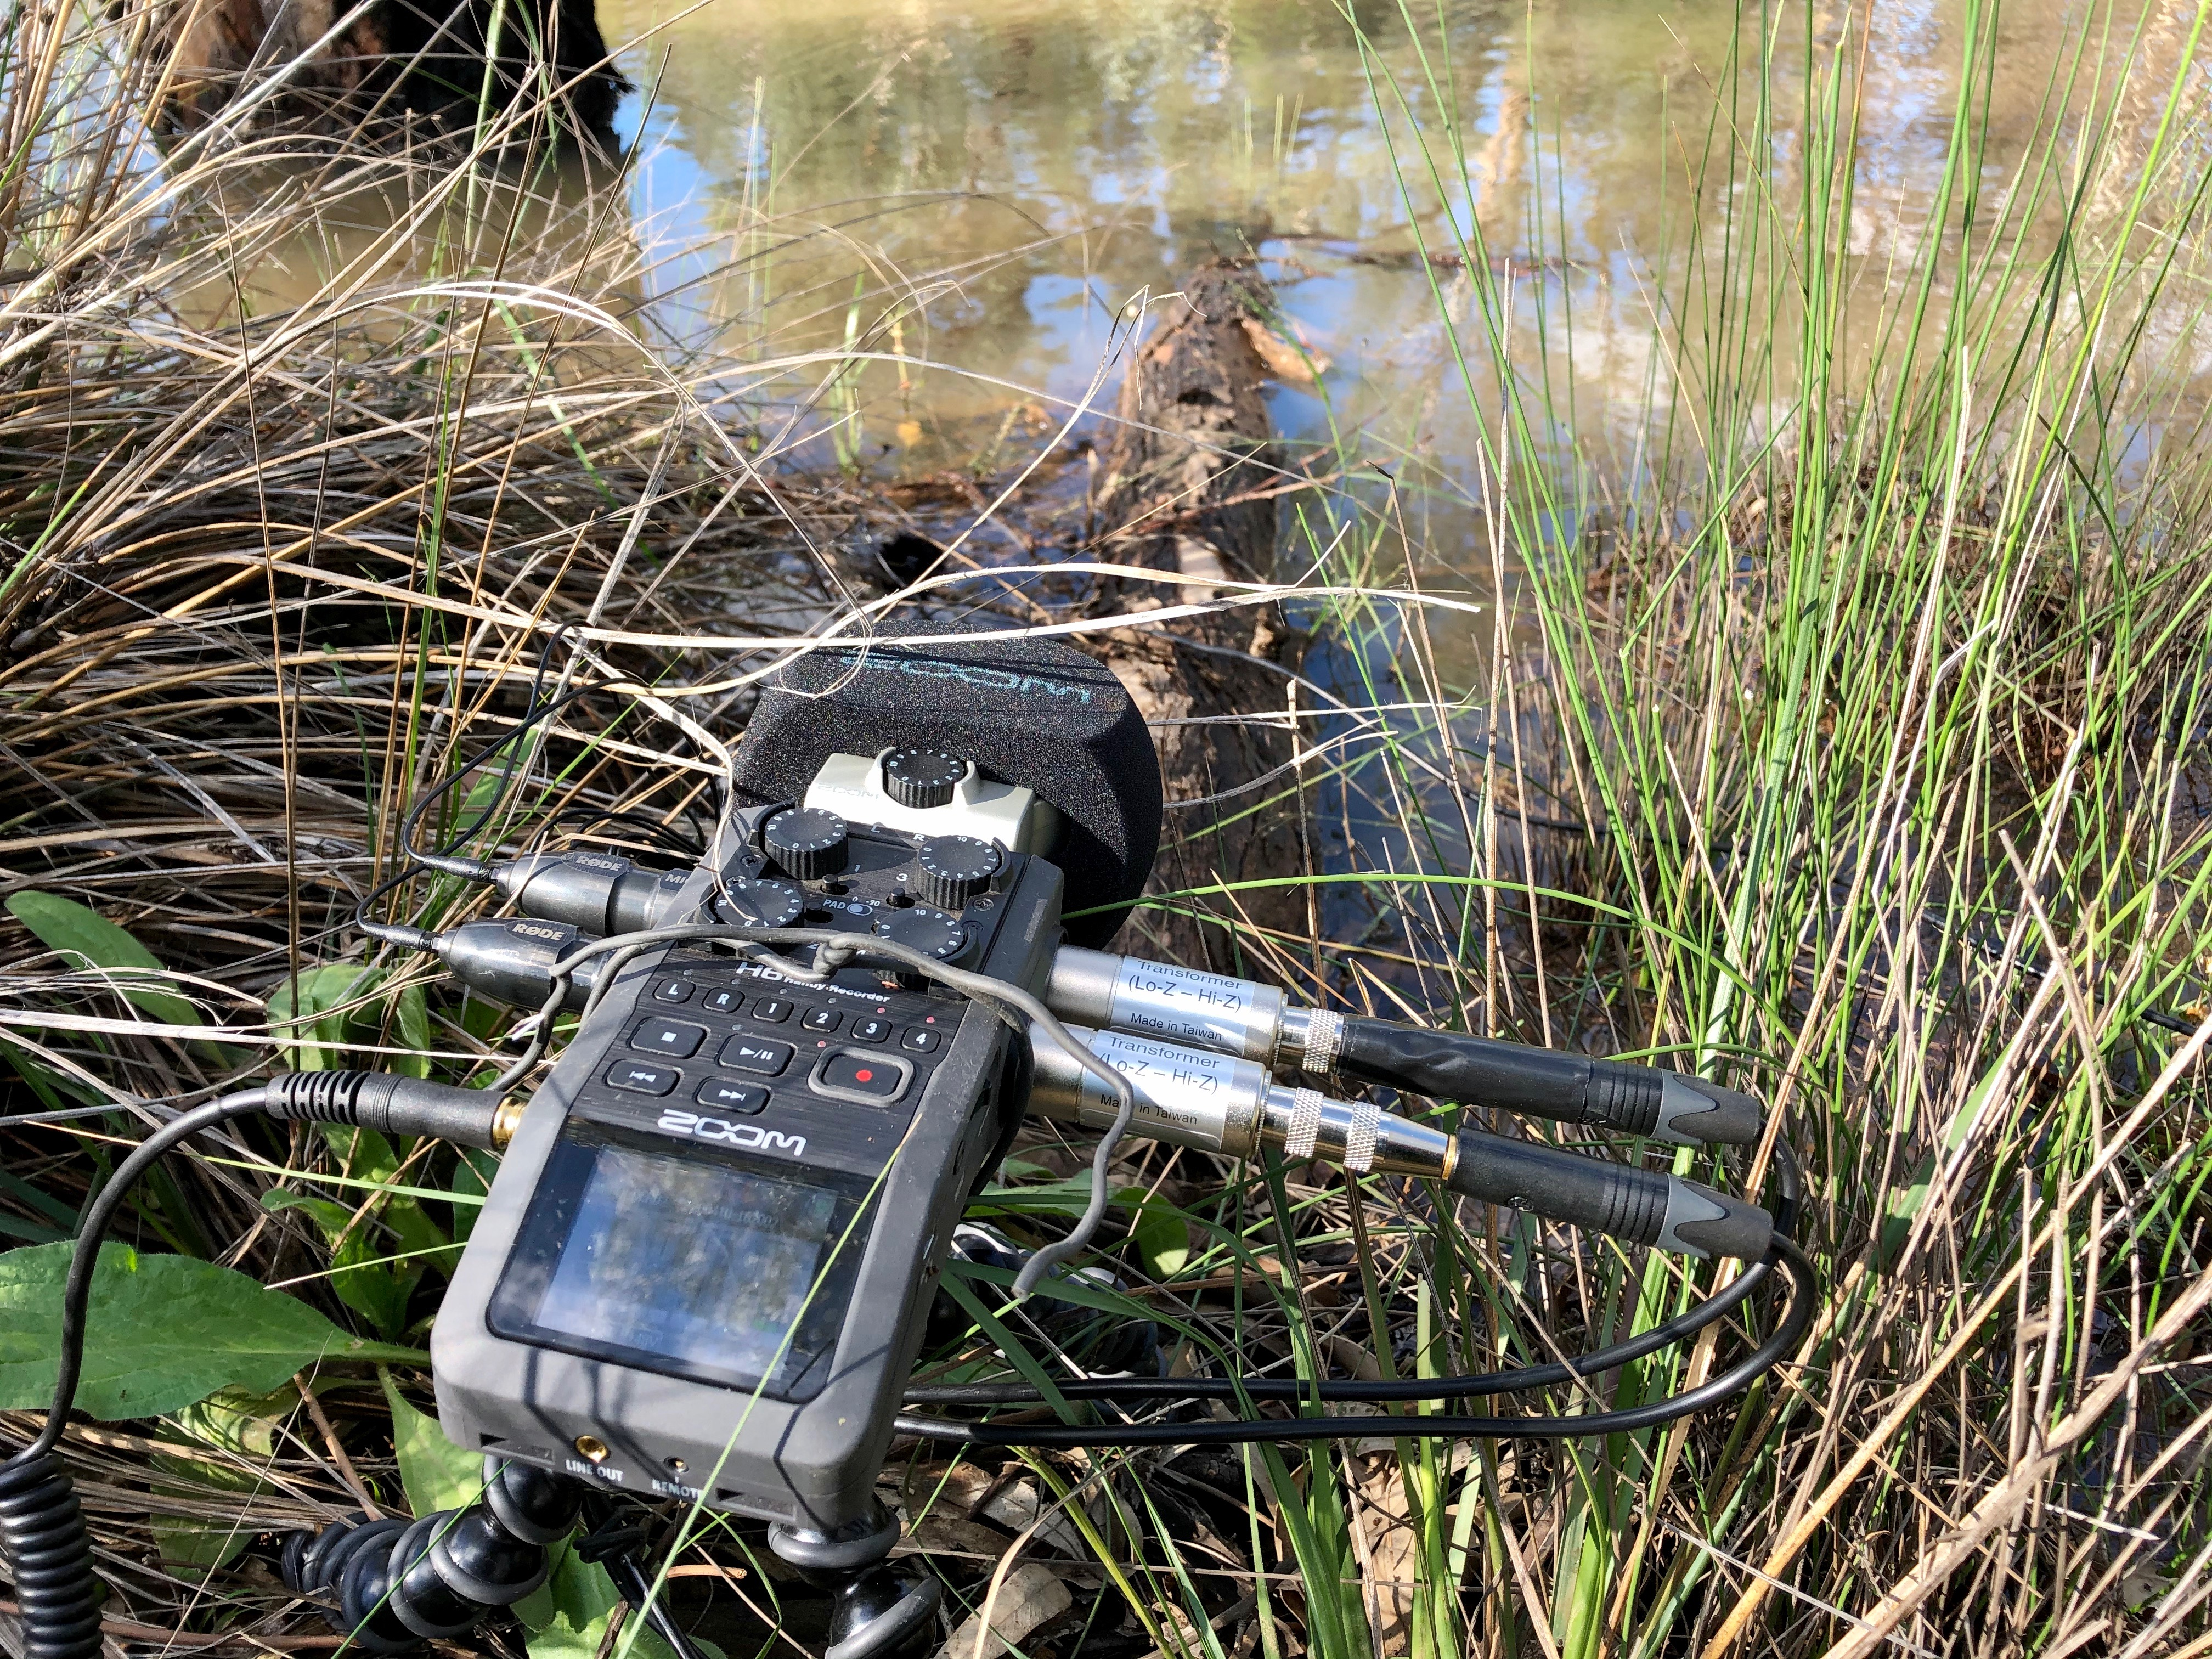 ZOOM H6 with lav mics and hydrophones